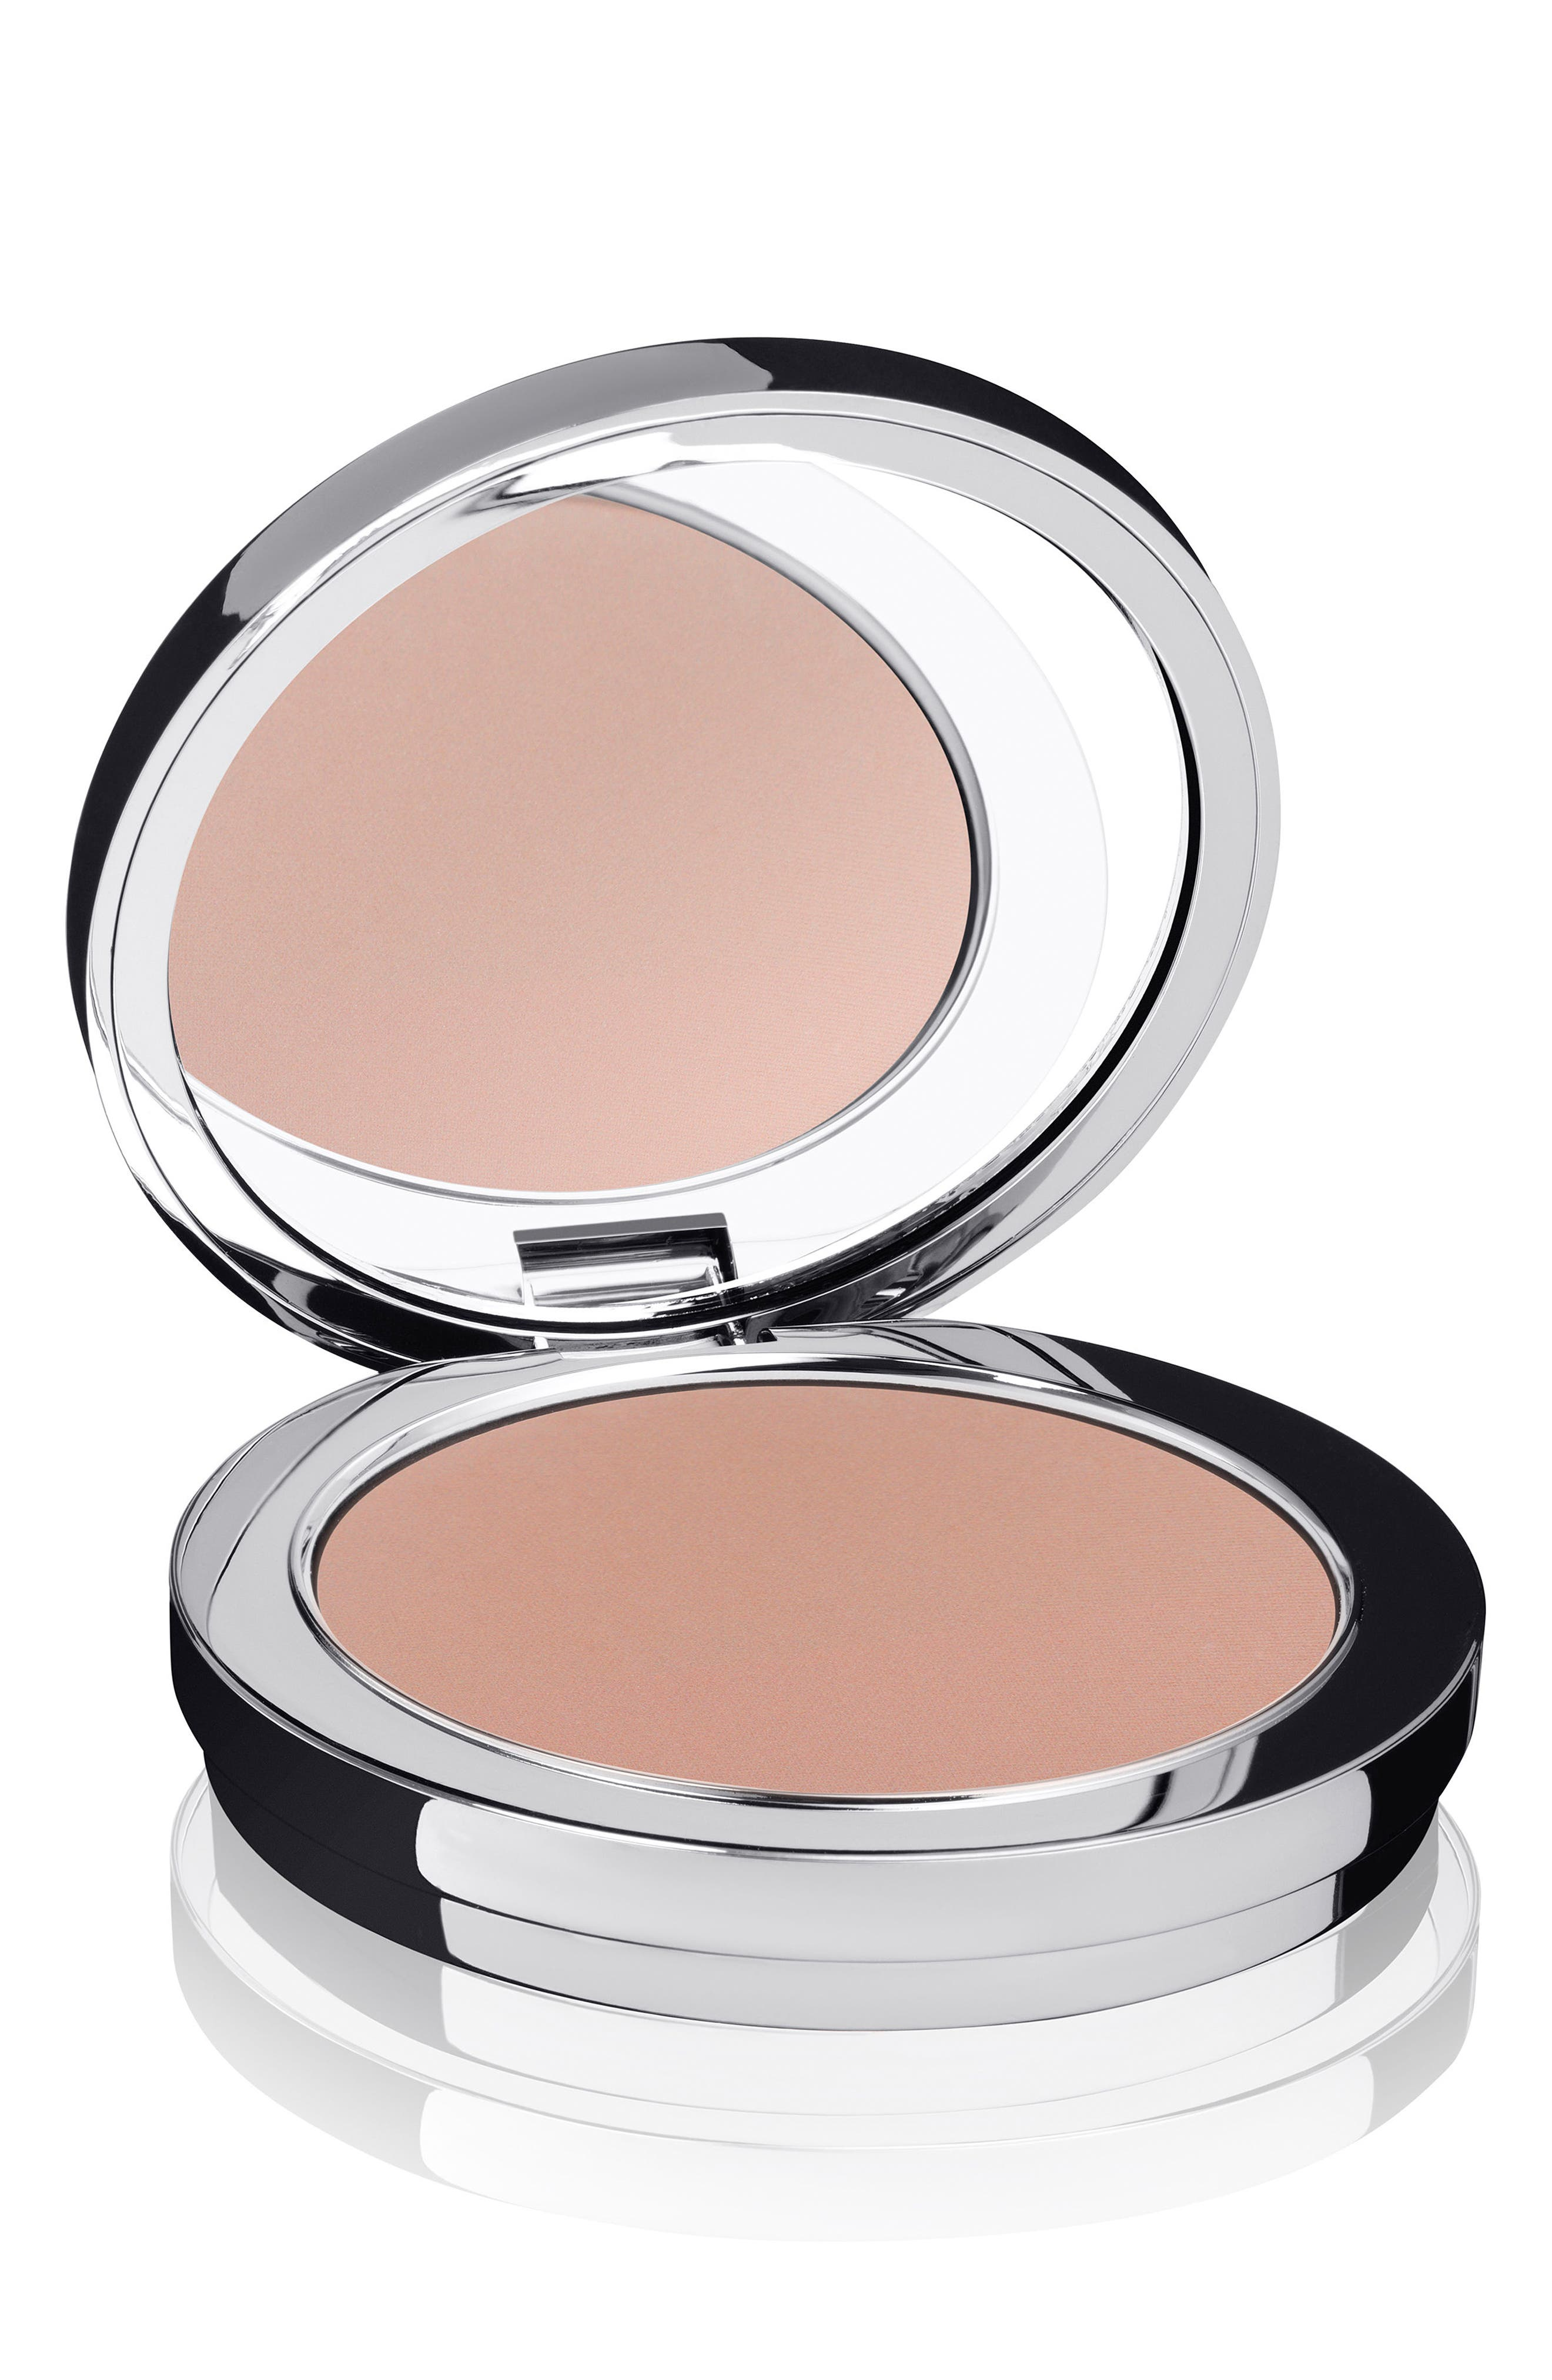 SPACE.NK.apothecary Rodial Instaglam<sup>™</sup> Deluxe Bronzing Powder Compact,                         Main,                         color, 200